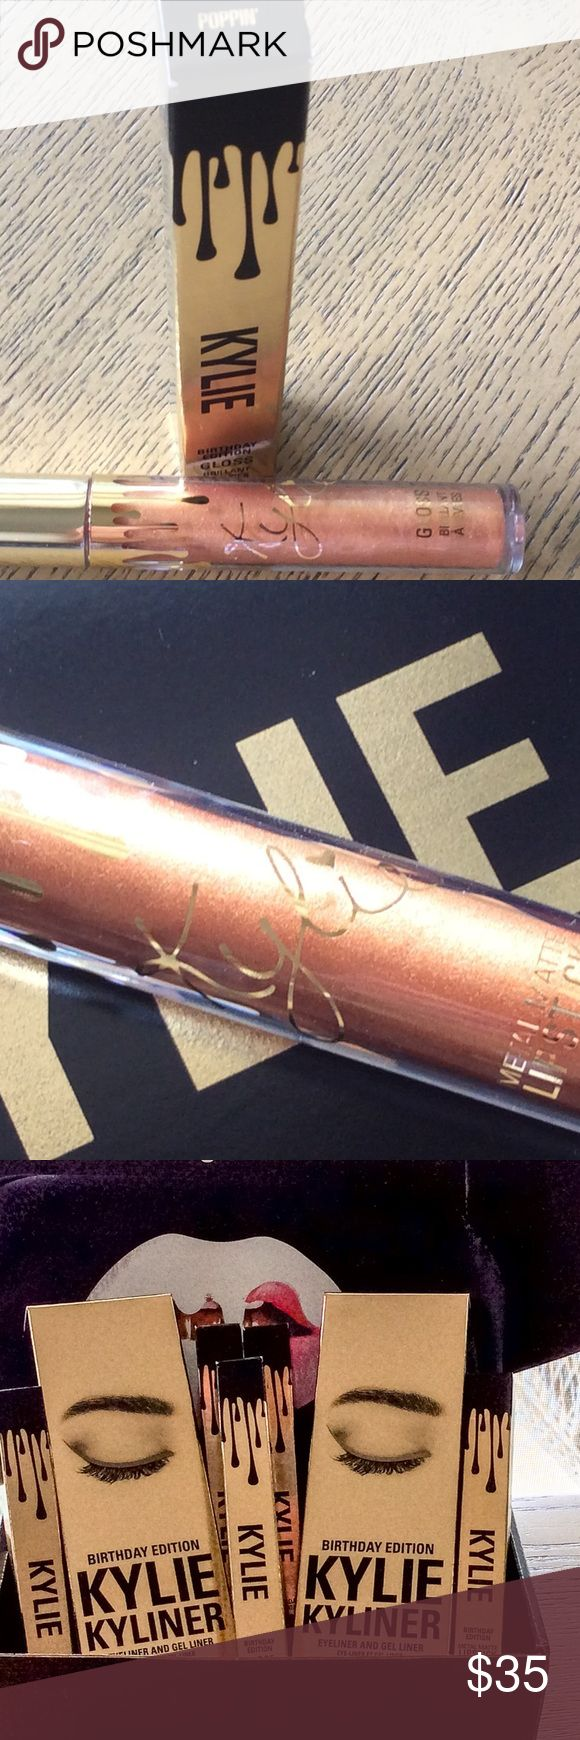 Kylie Jenner Ltd Bday Edition POPPIN' Lip Gloss Kylie Jenner Limited Gold Birthday Edition POPPIN LIP GLOSS. This is brand new in box, never opened. It came direct from her website and is guaranteed authentic. They are no longer making these and are completely sold out. Kylie Cosmetics Makeup Lip Balm & Gloss